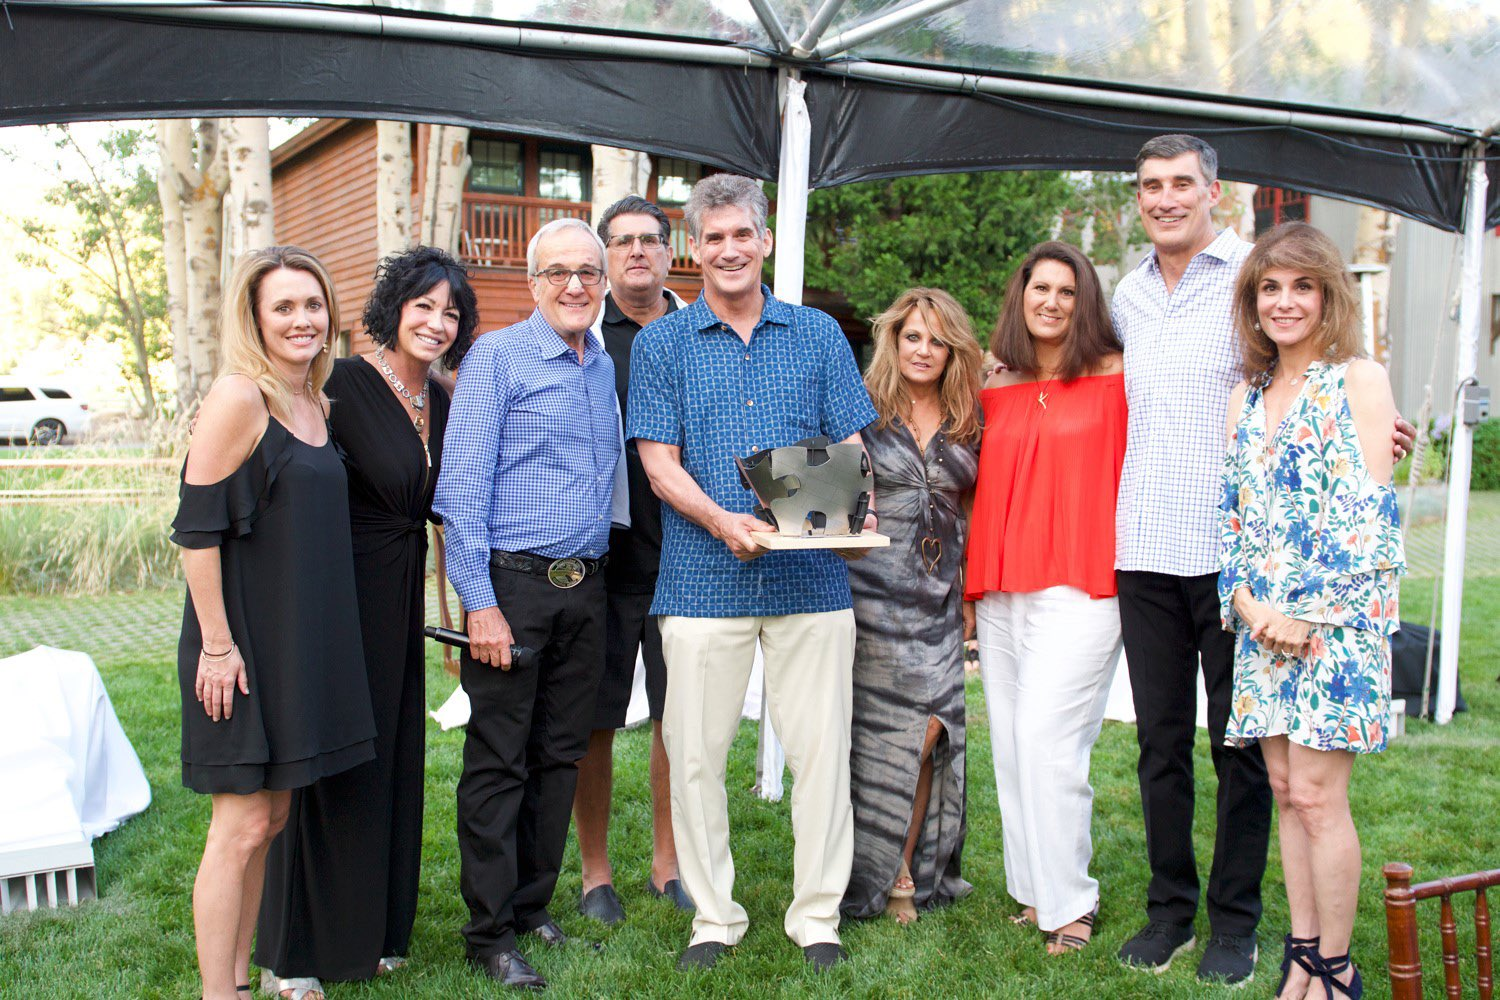 Keep Memory Alive 2017 Summer Social and Rodeo at Shakespeare Community Leadership Award Recipients Carano Family